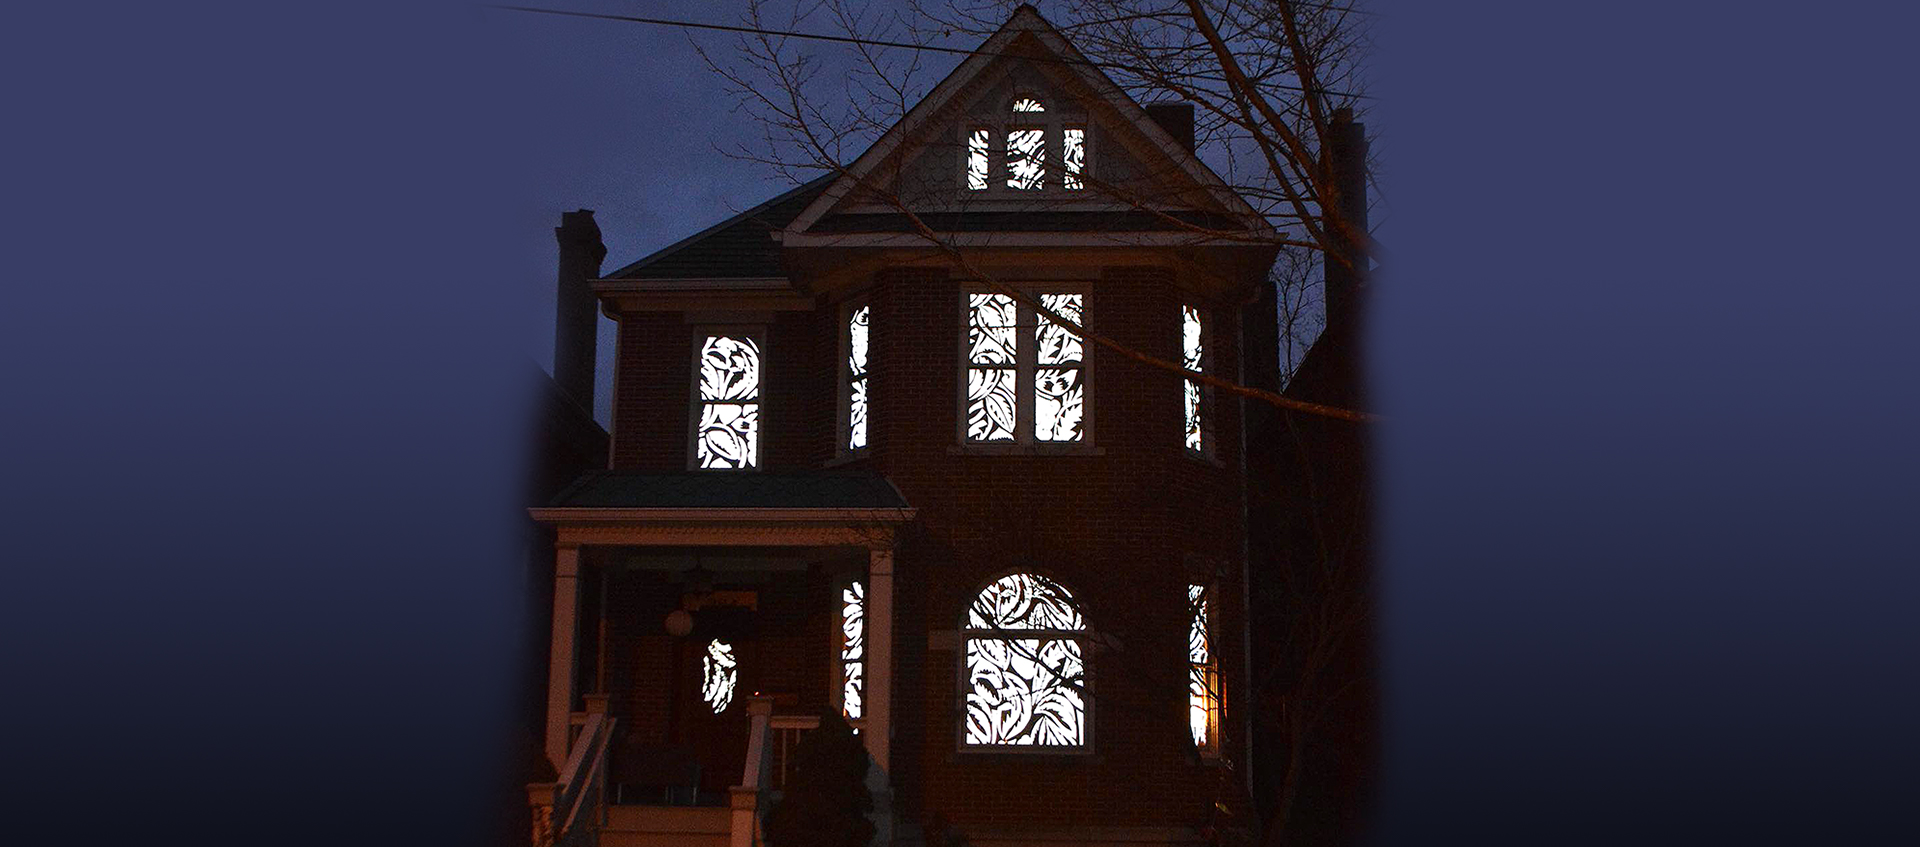 Antique patterns activated by light in the windows of a three-story Victorian home